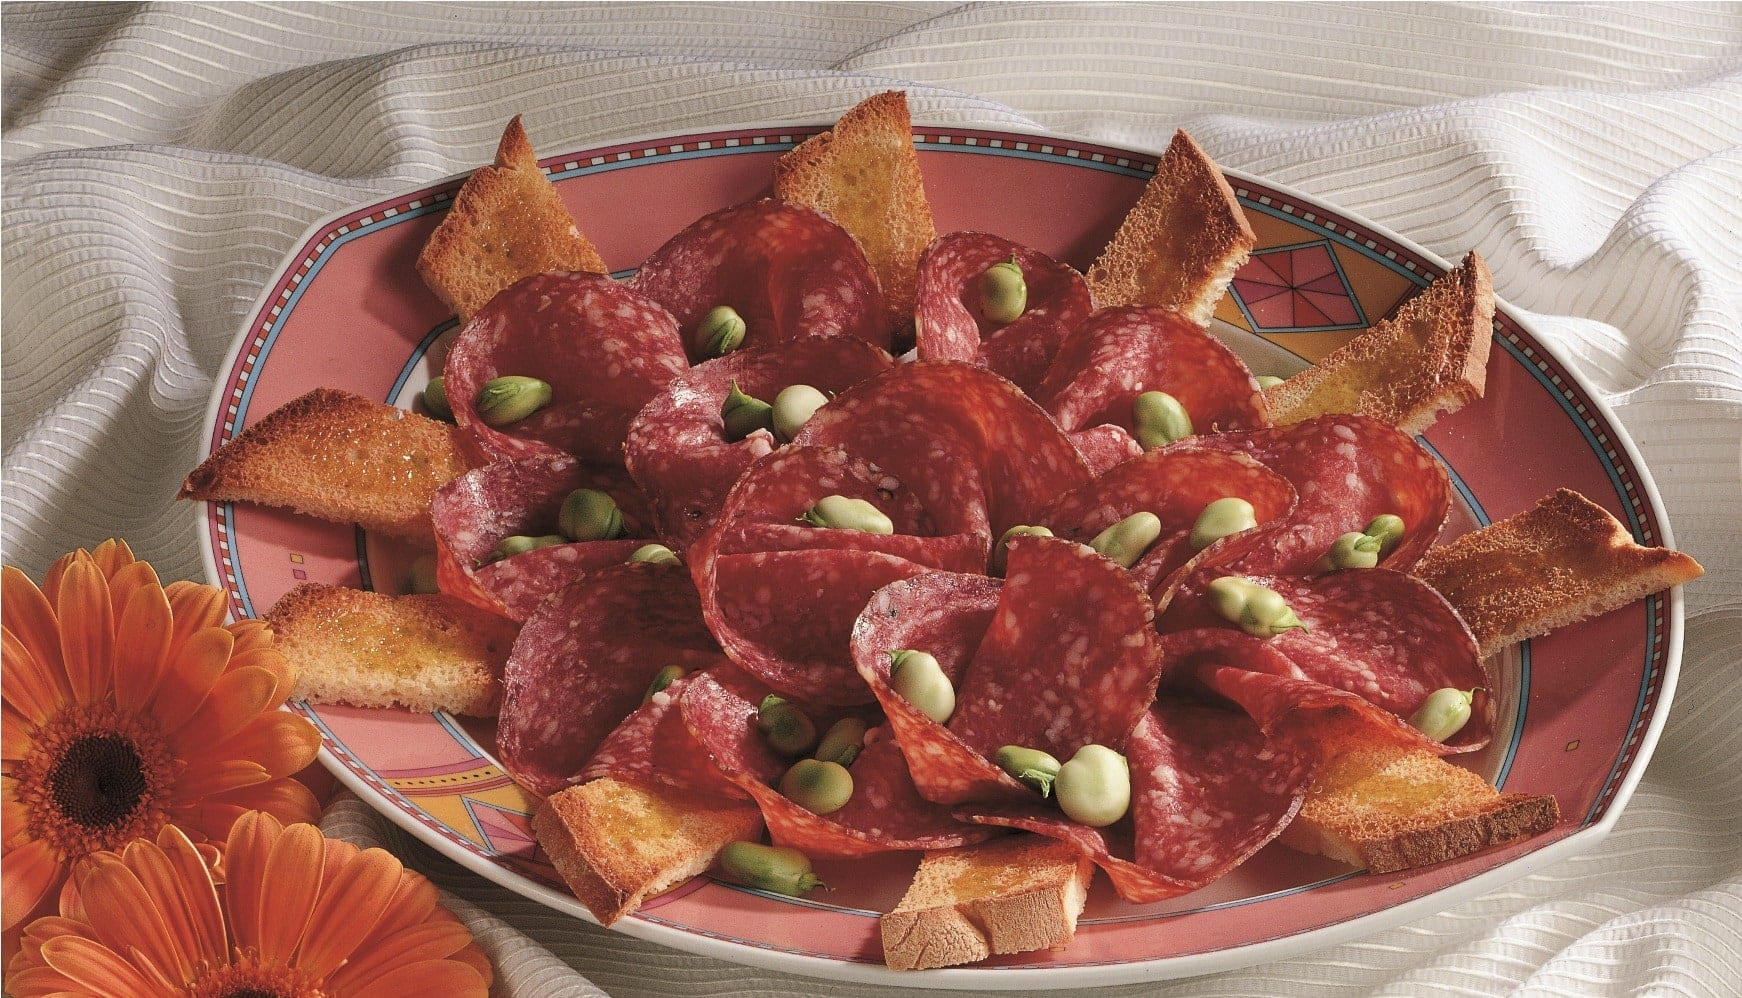 What is salami made of and what's the best way to serve it.